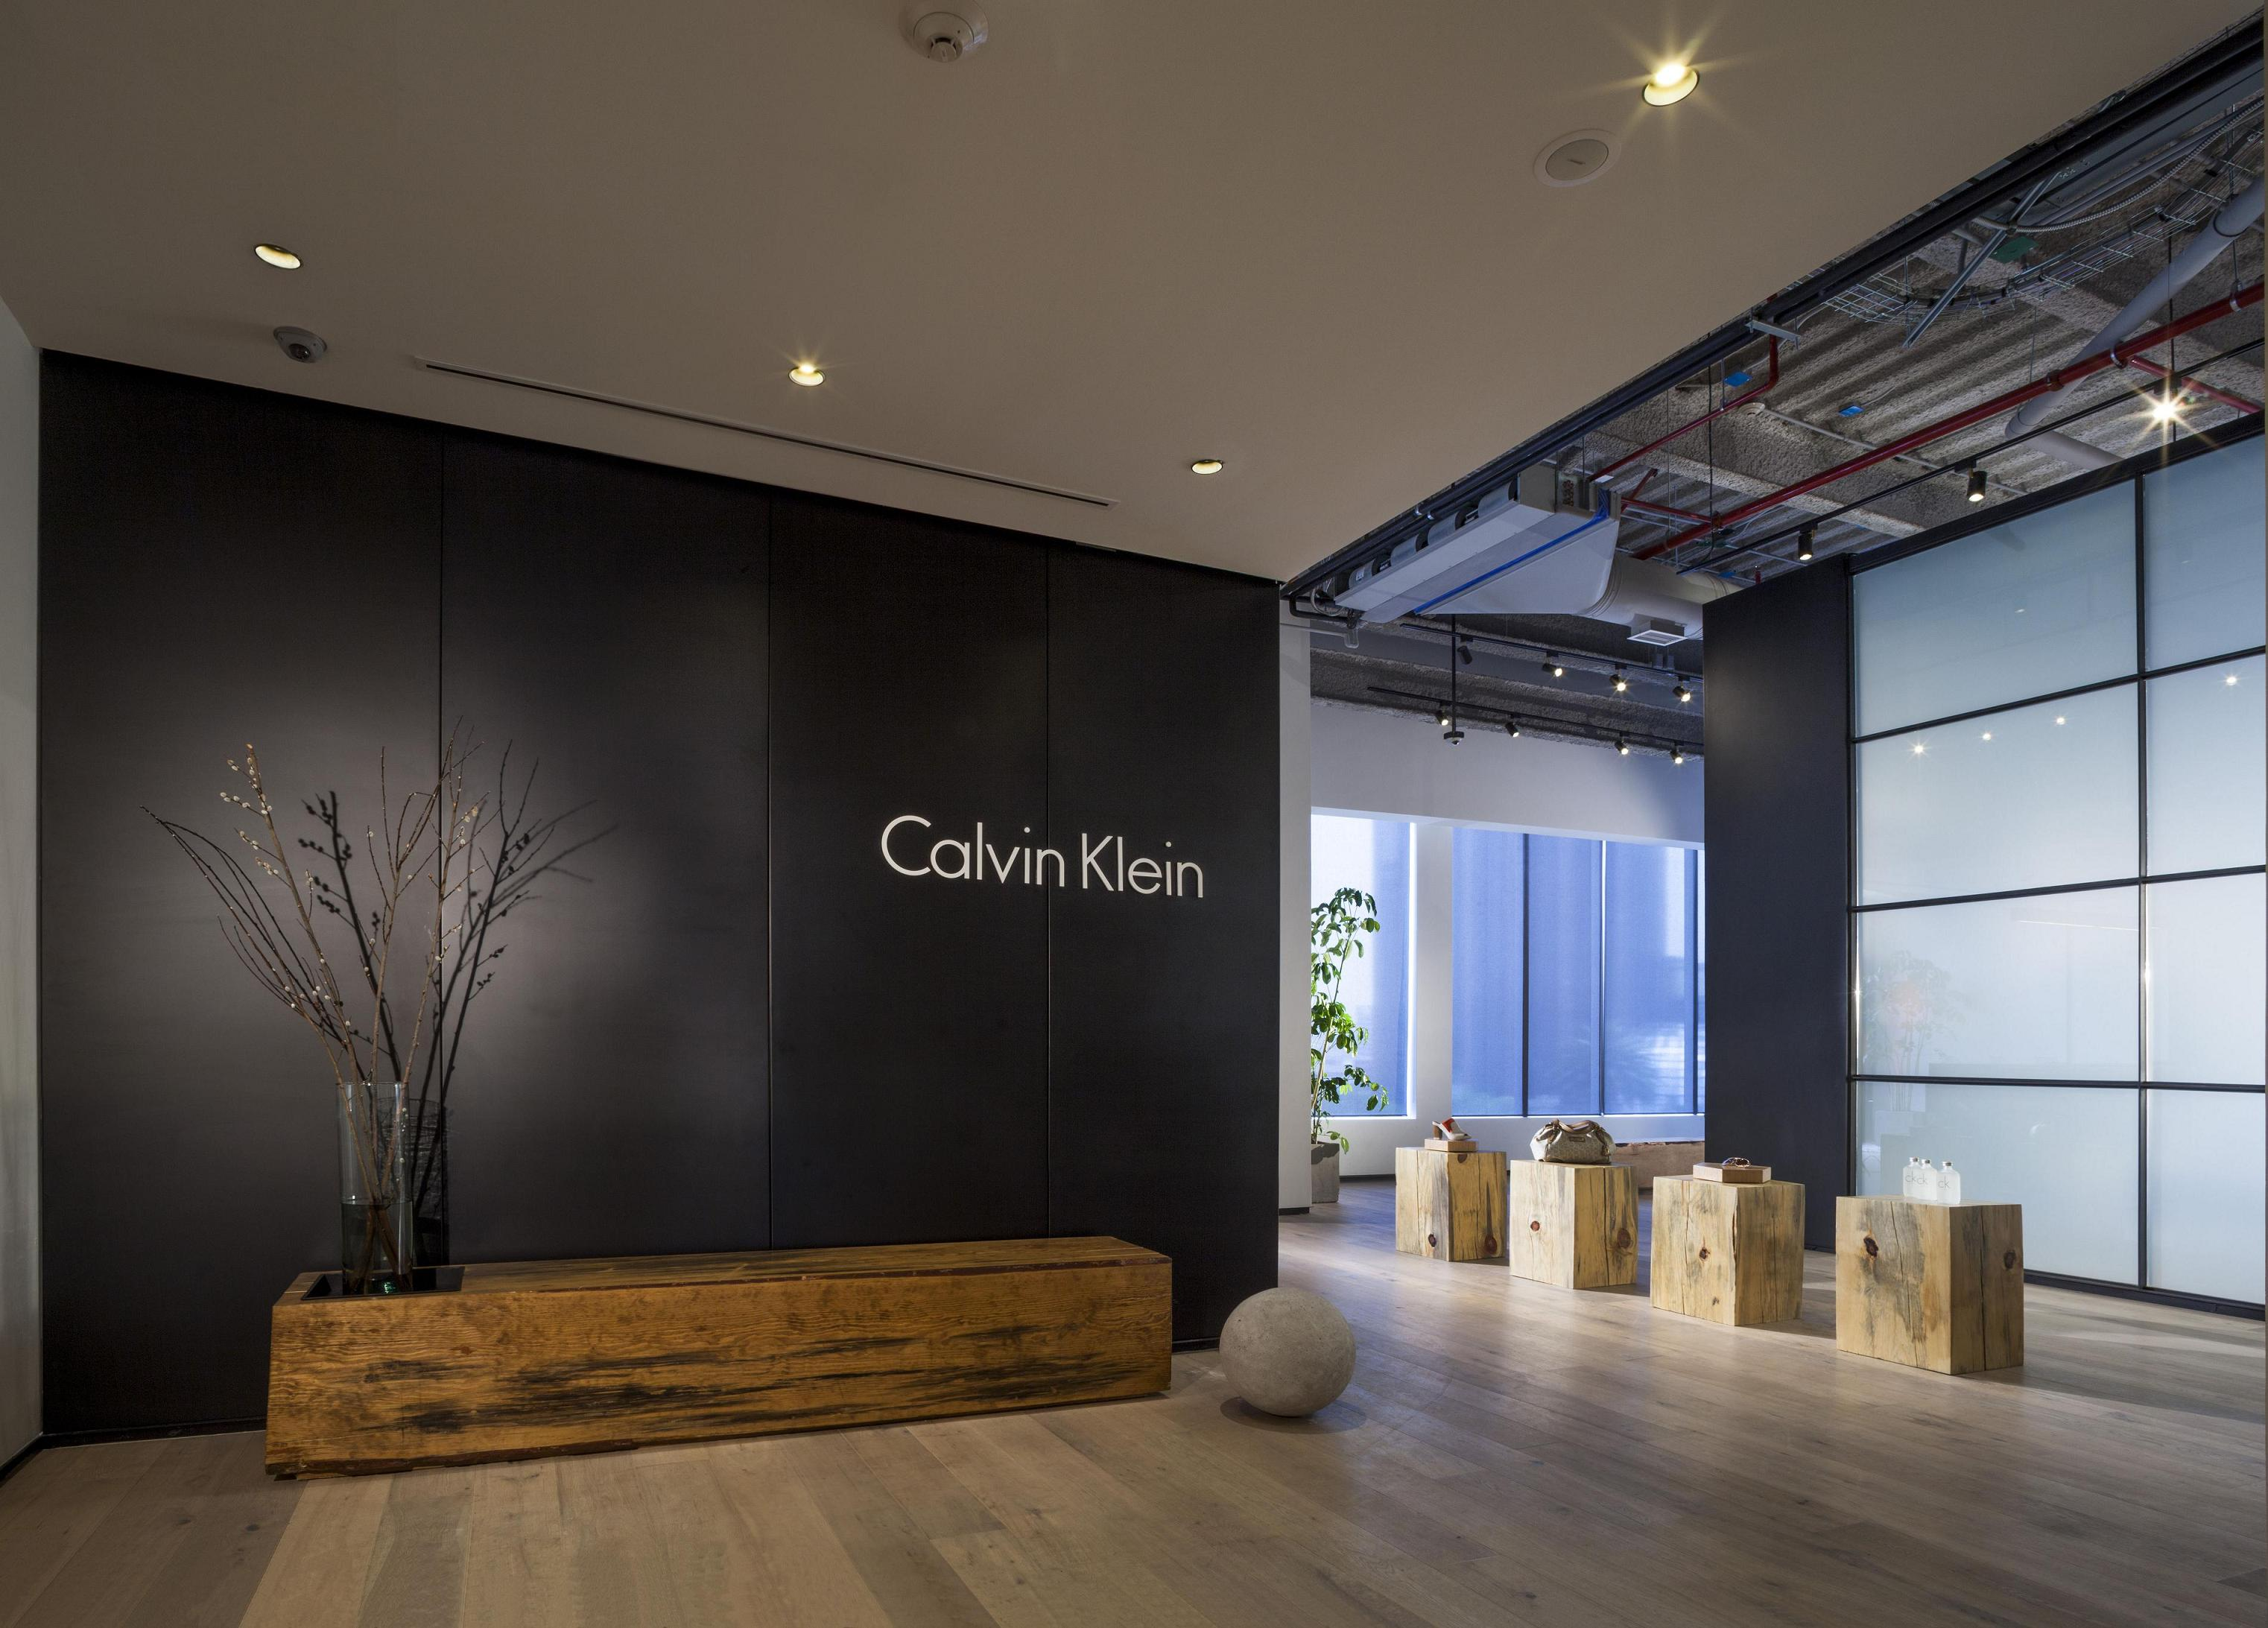 Calvin Klein Showroom By Juan Carlos Baumgartner